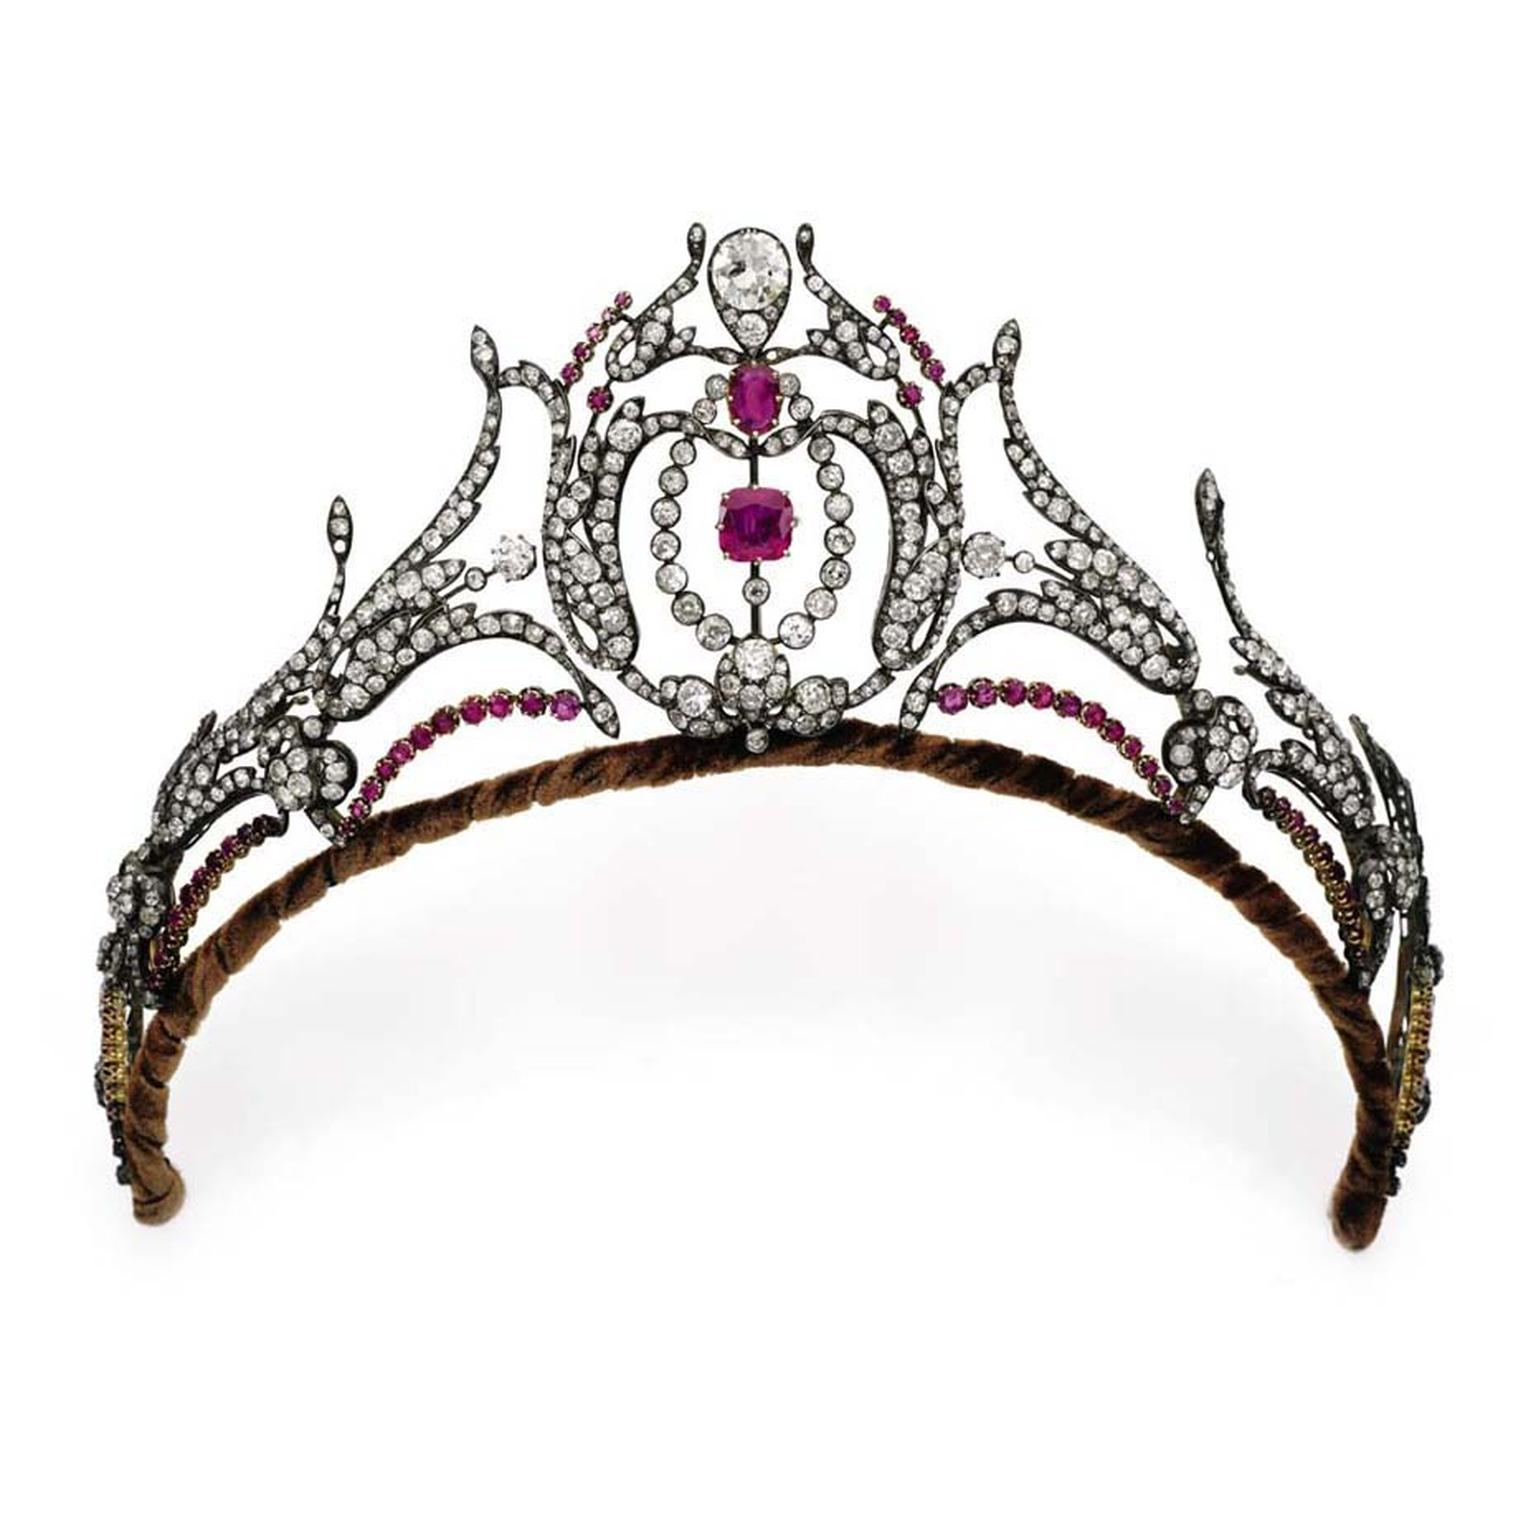 This diamond and ruby tiara, thought to be from the second half of the 19th century, sold for $109,000.